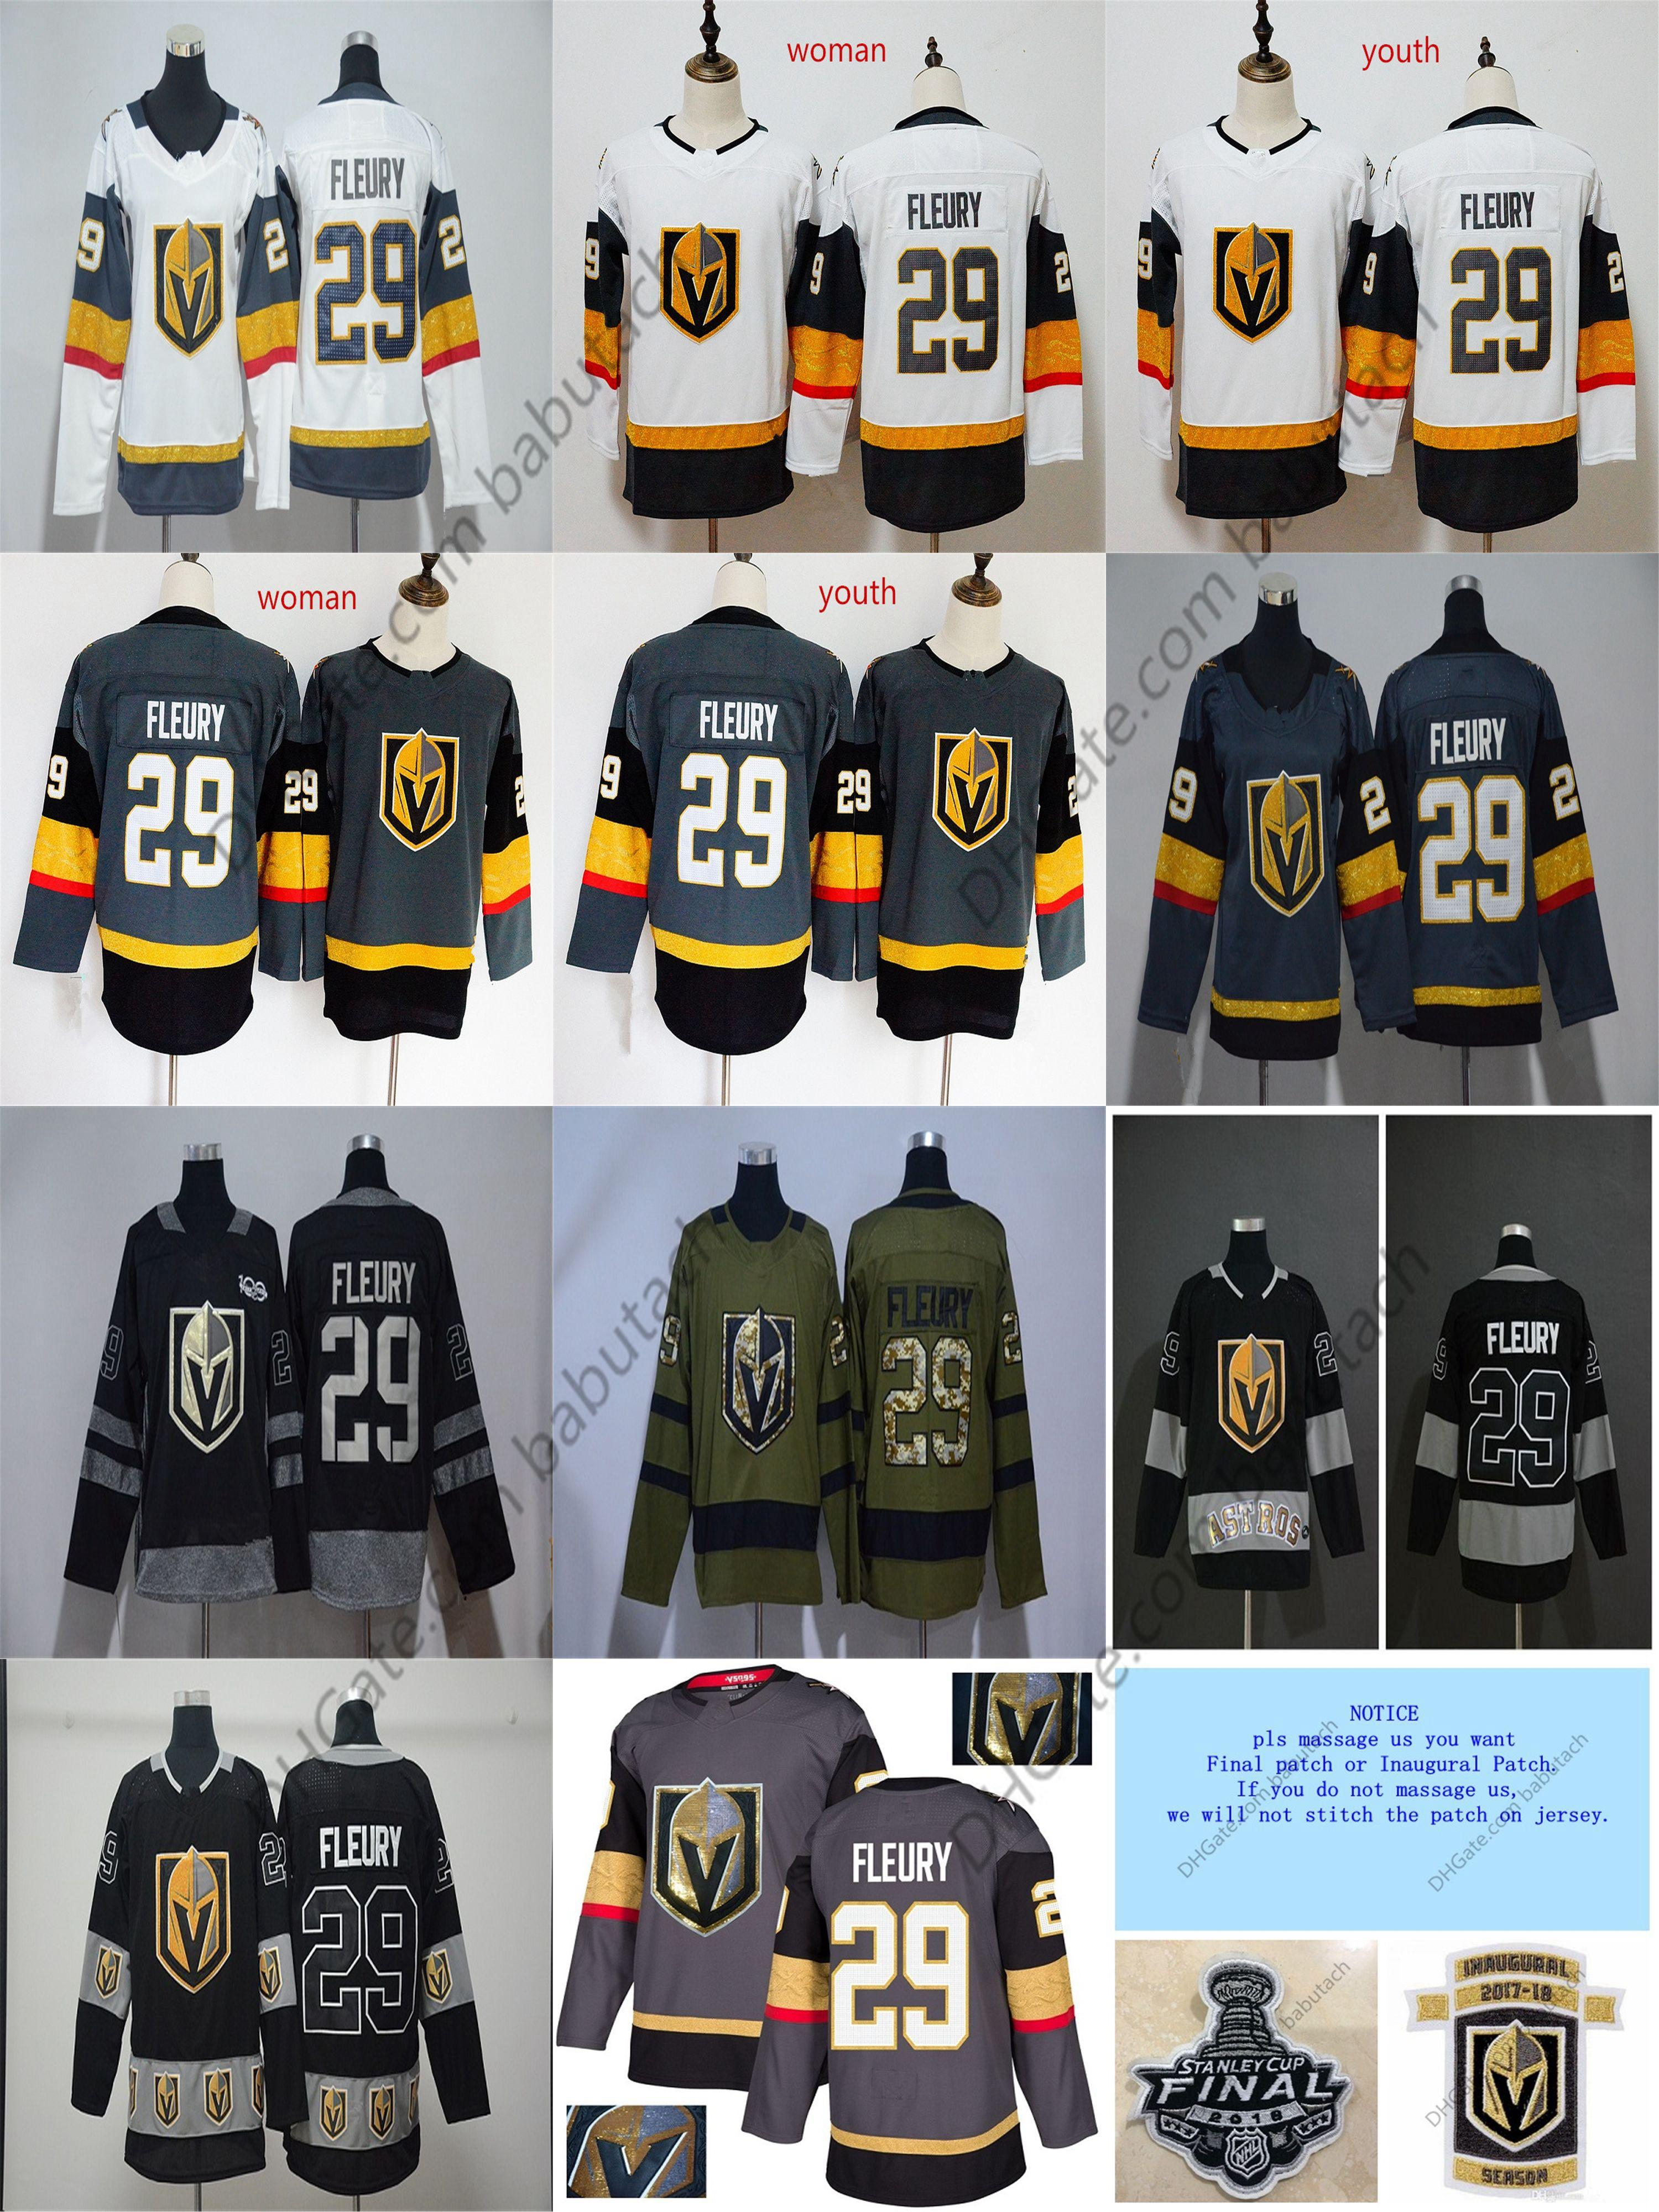 quality design 7ea02 558f8 Vegas Golden Knights Jersey 2018 Stanley Cup Finals 29 Marc-Andre Fleury  Jersey 100th Mans Woman Youth customize Hockey jerseys